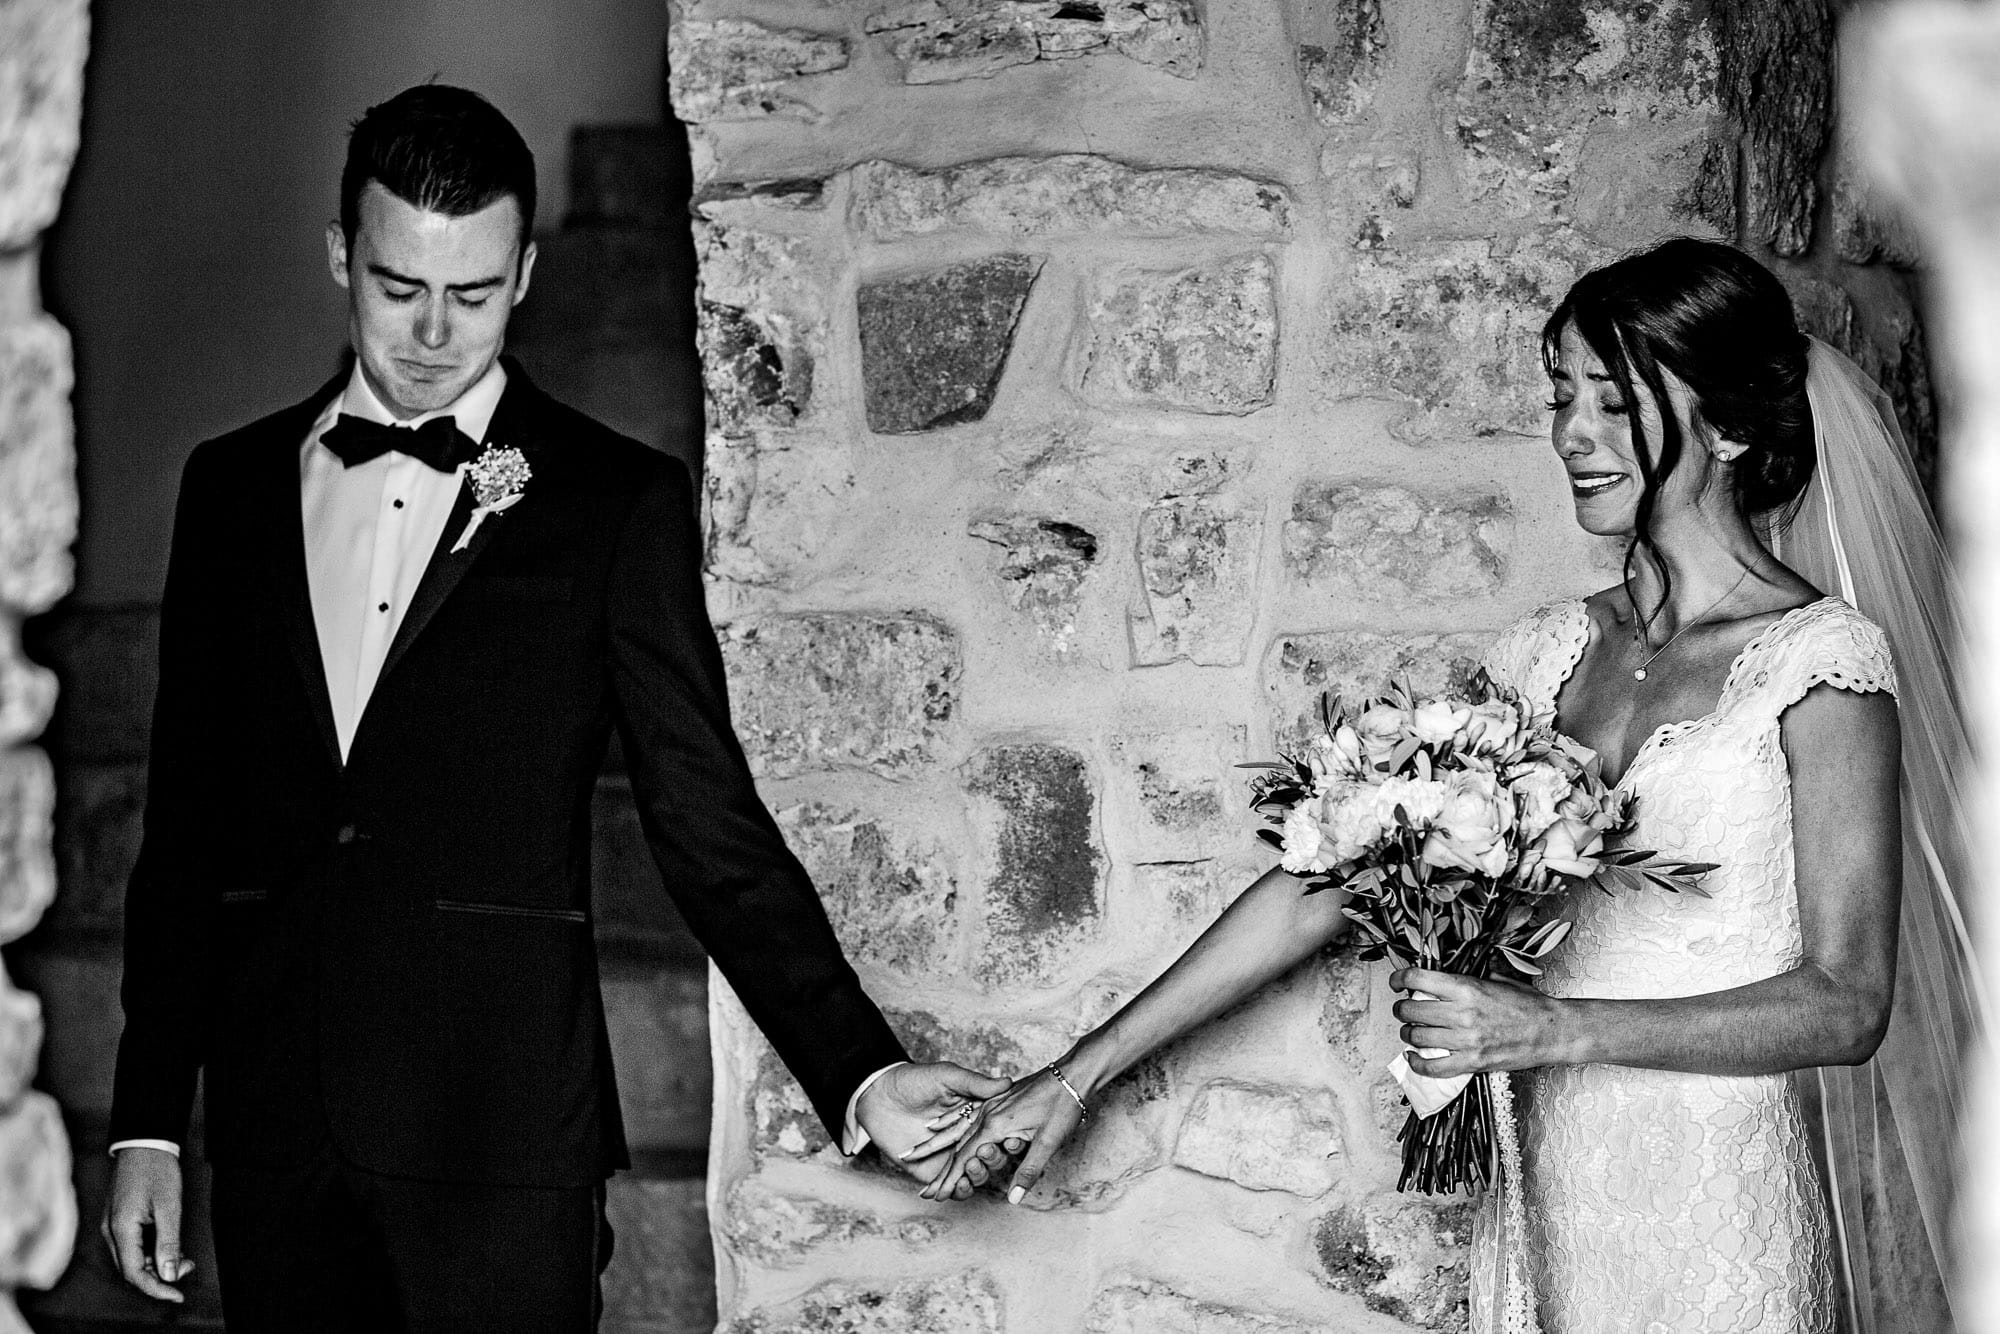 Emotional moment of bride and groom touching hands without looking before their Chateau Zen wedding ceremony in the South of France.